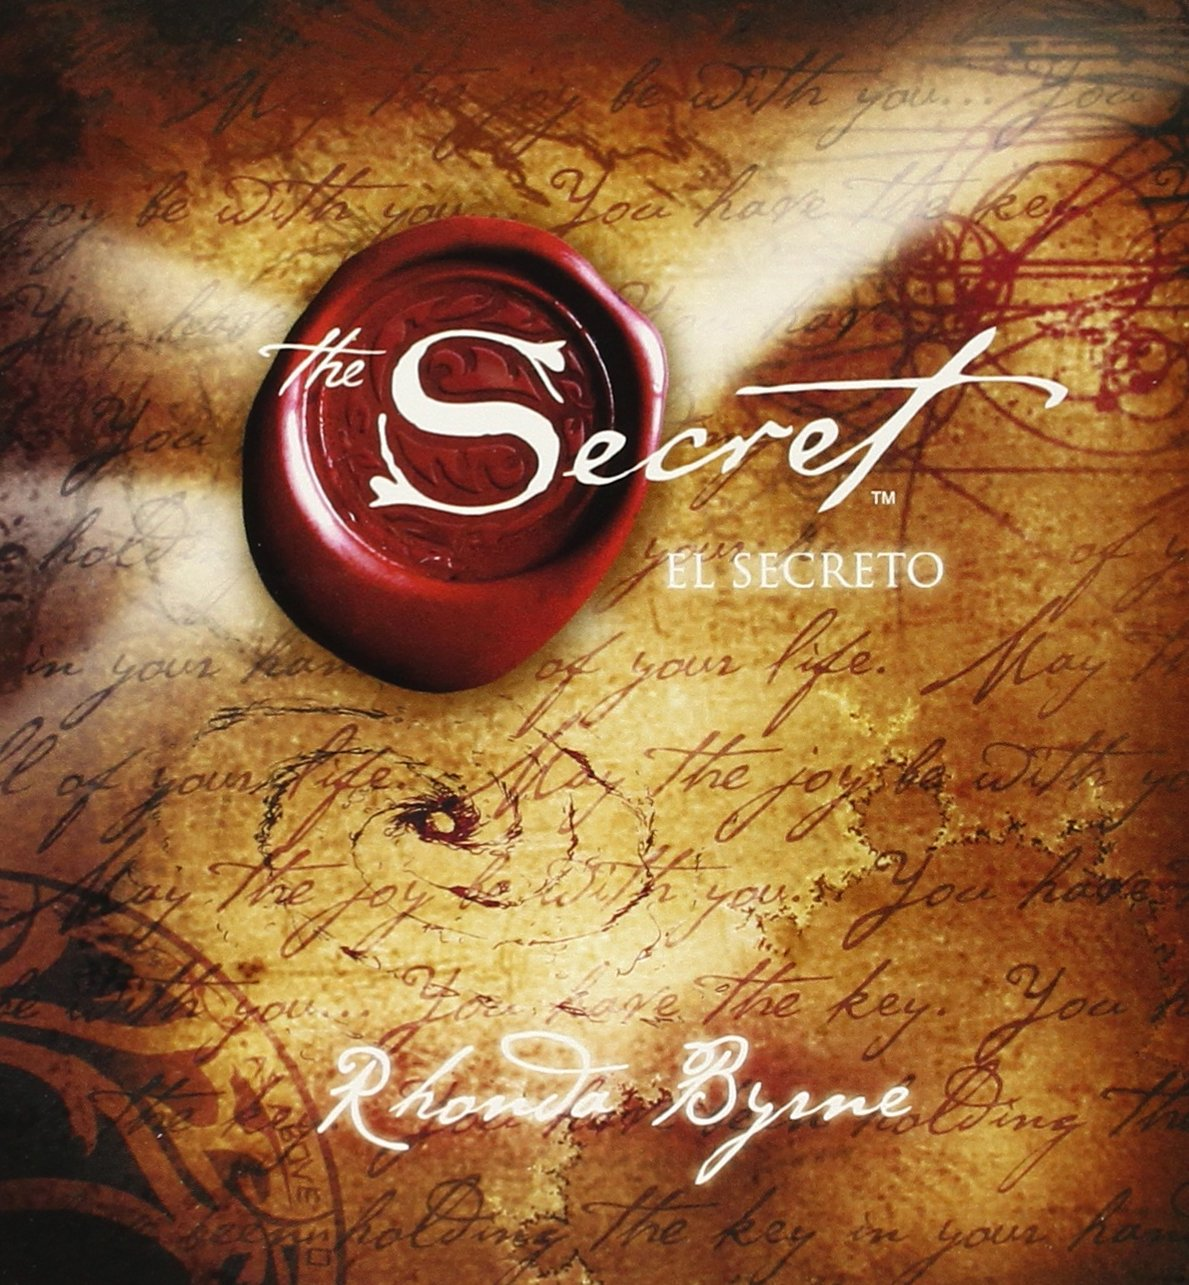 El secreto the secret spanish edition rhonda byrne rebeca sanchez manriquez 9780743571784 amazon com books